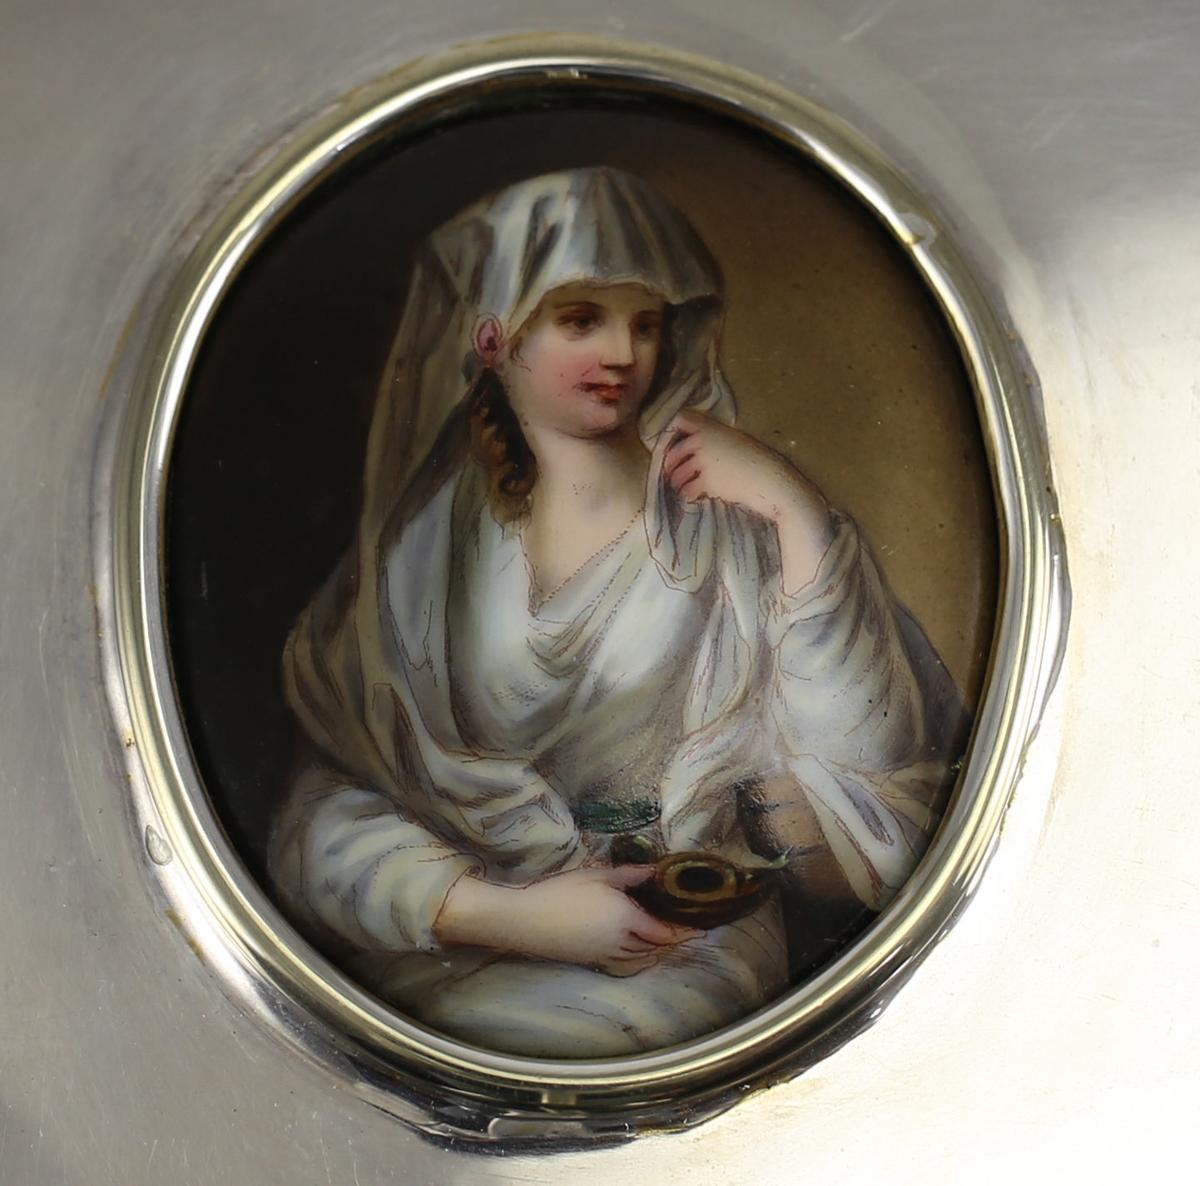 Tiffany Amp Co Sterling Silver Box With Porcelain Portrait